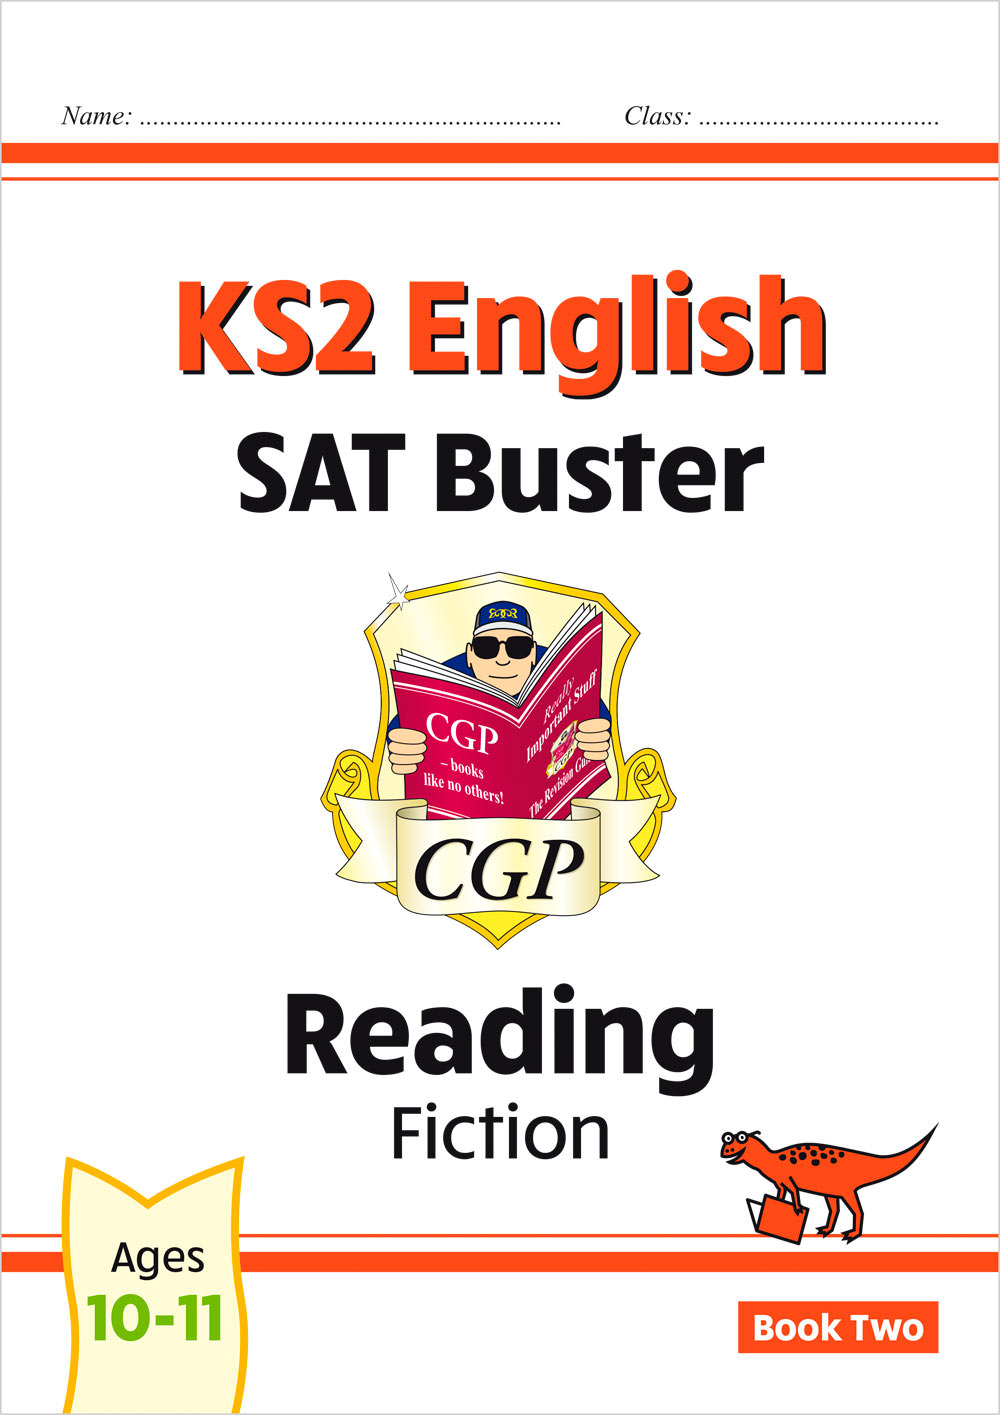 E6FRF222 - New KS2 English Reading SAT Buster: Fiction - Book 2 (for the 2021 tests)